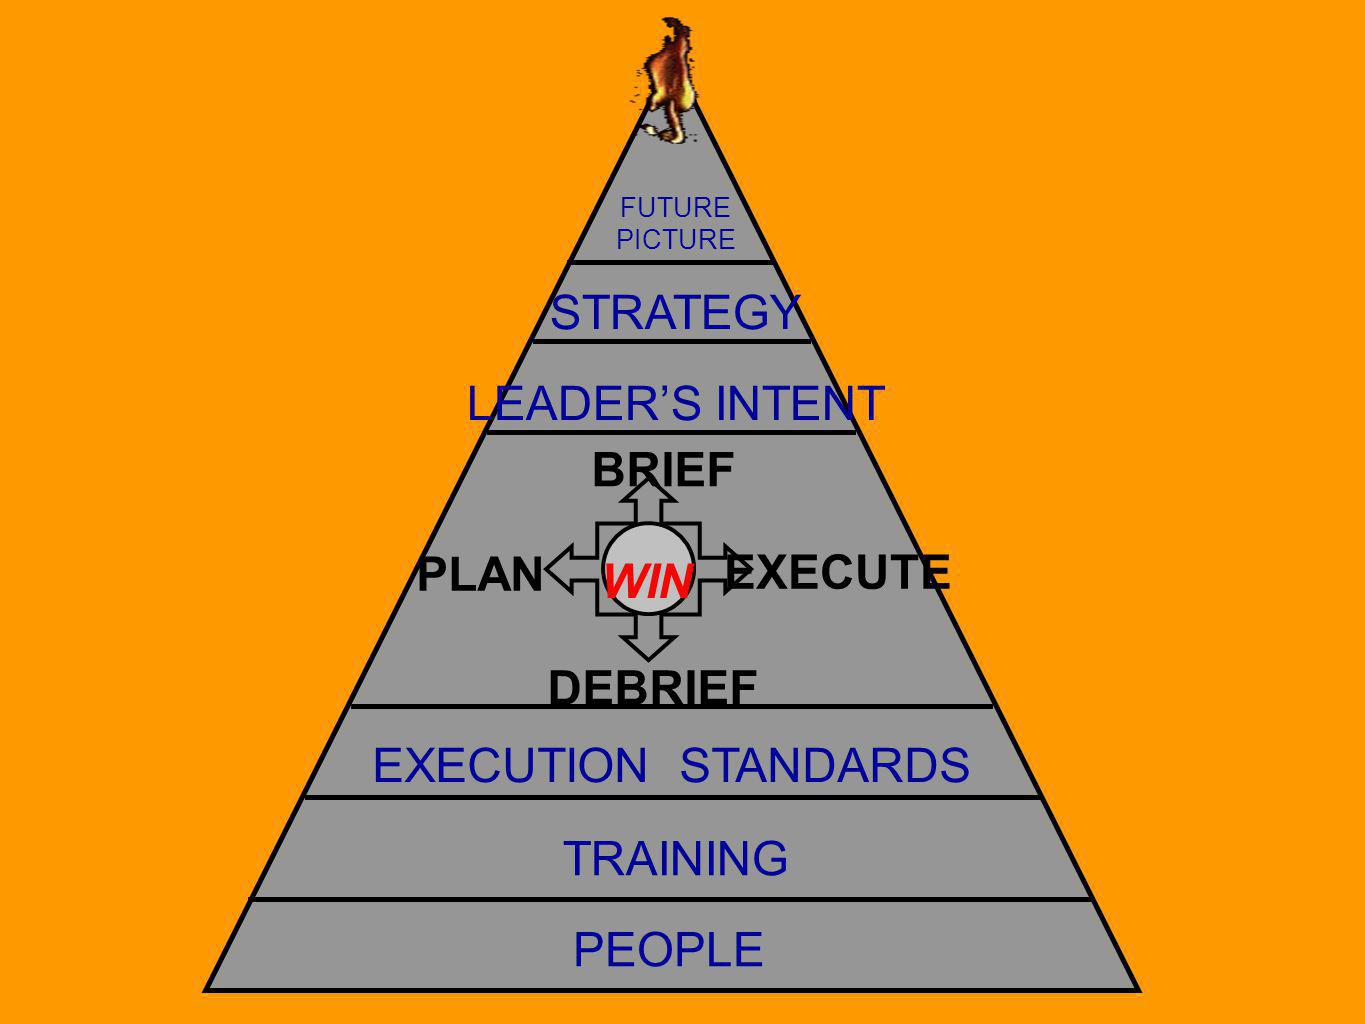 PEOPLE TRAINING EXECUTION STANDARDS FUTURE PICTURE STRATEGY LEADERS INTENT BRIEF EXECUTE DEBRIEF PLAN WIN